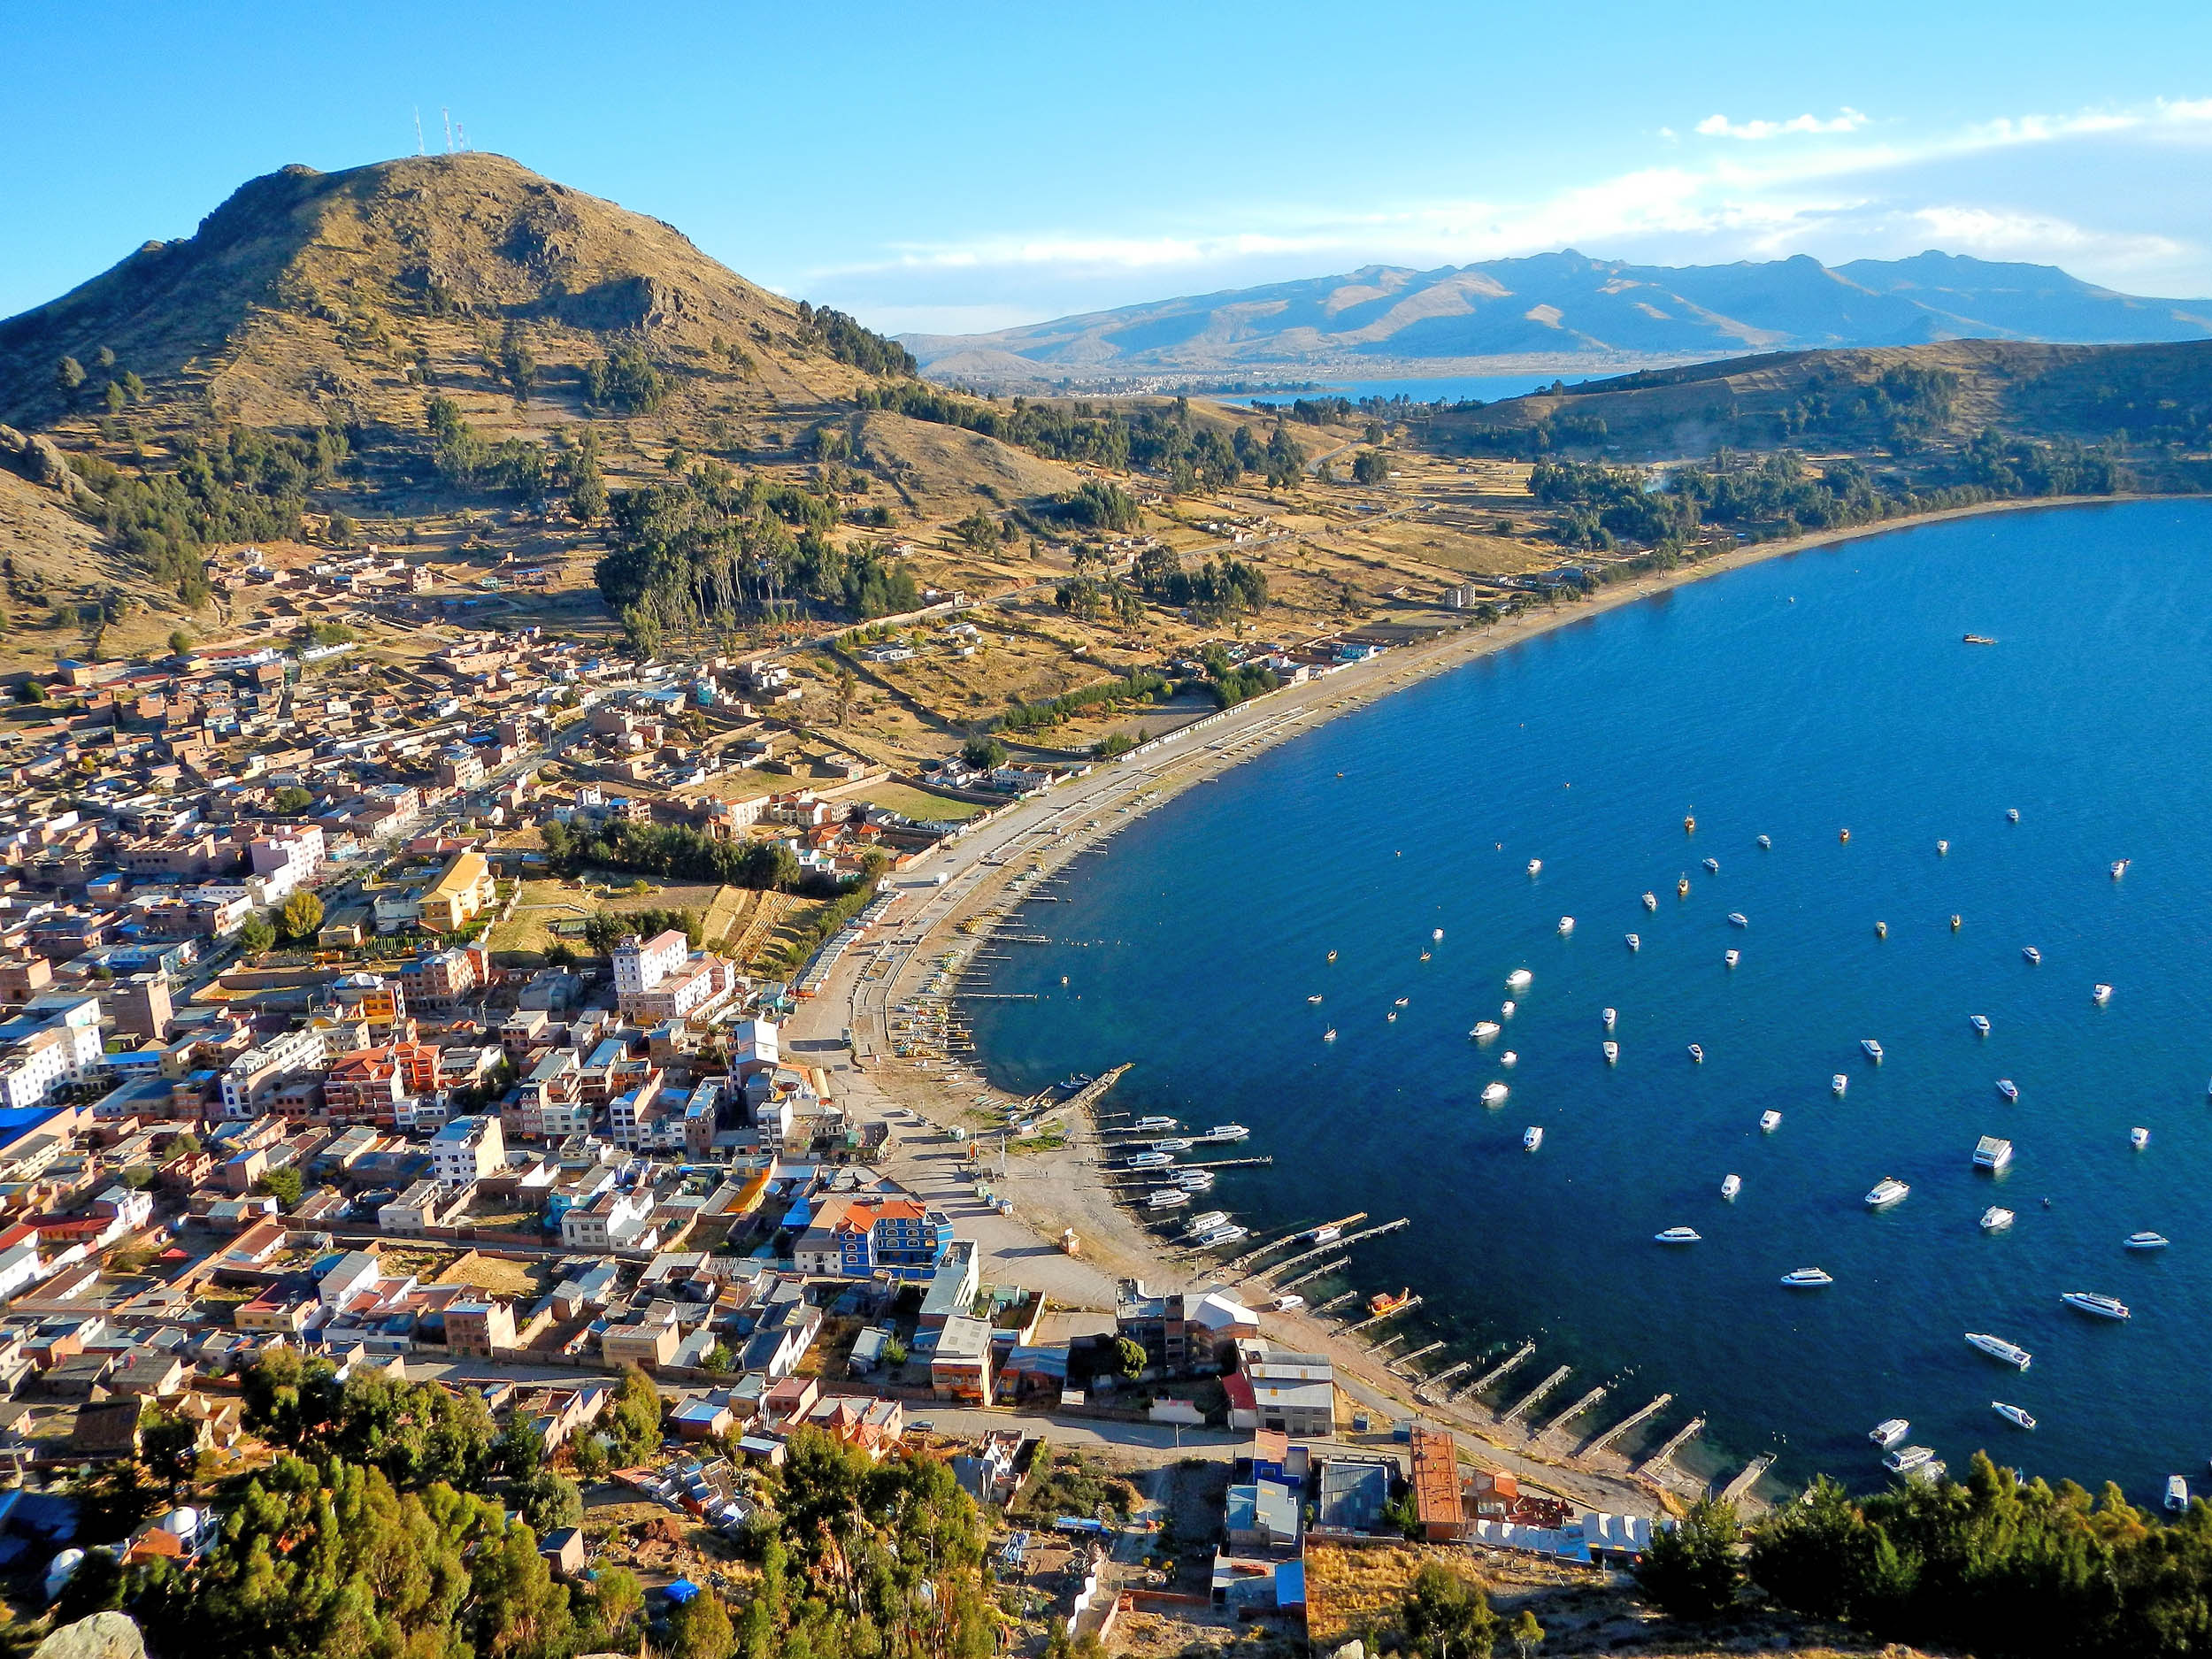 Pollution plagues Peru's famous Lake Titicaca